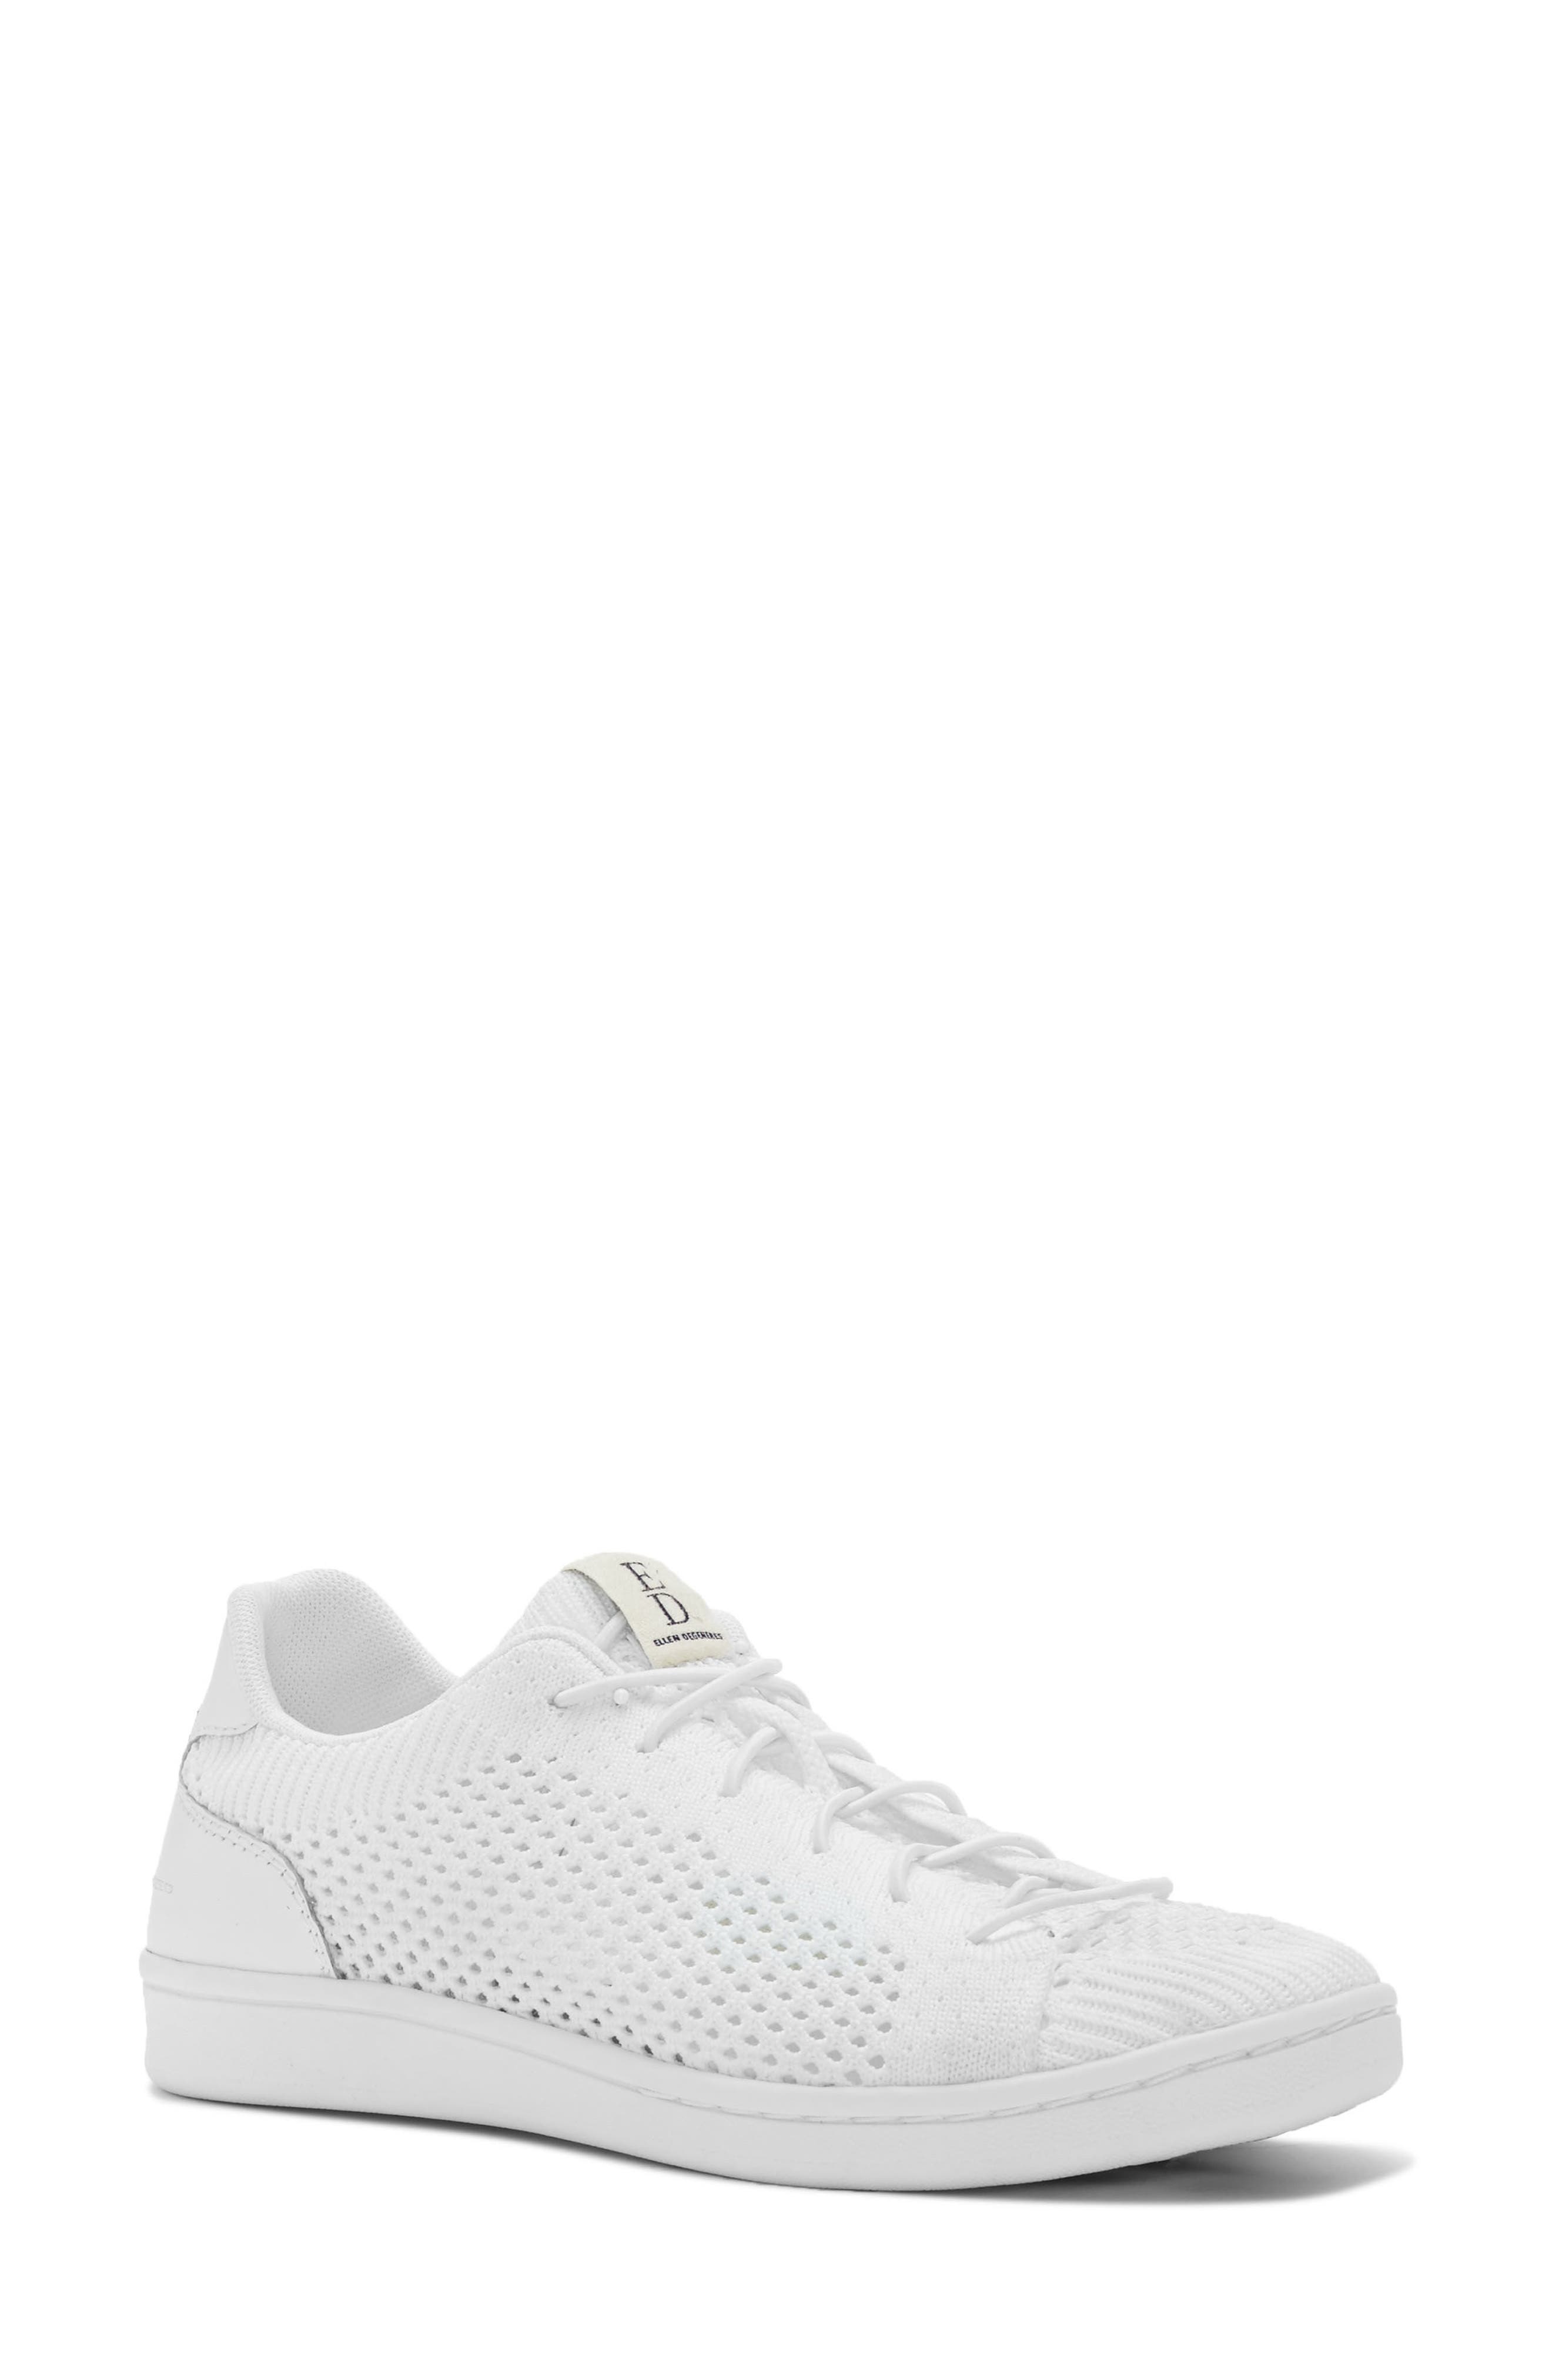 Casie Knit Sneaker,                         Main,                         color, Pure White Fabric